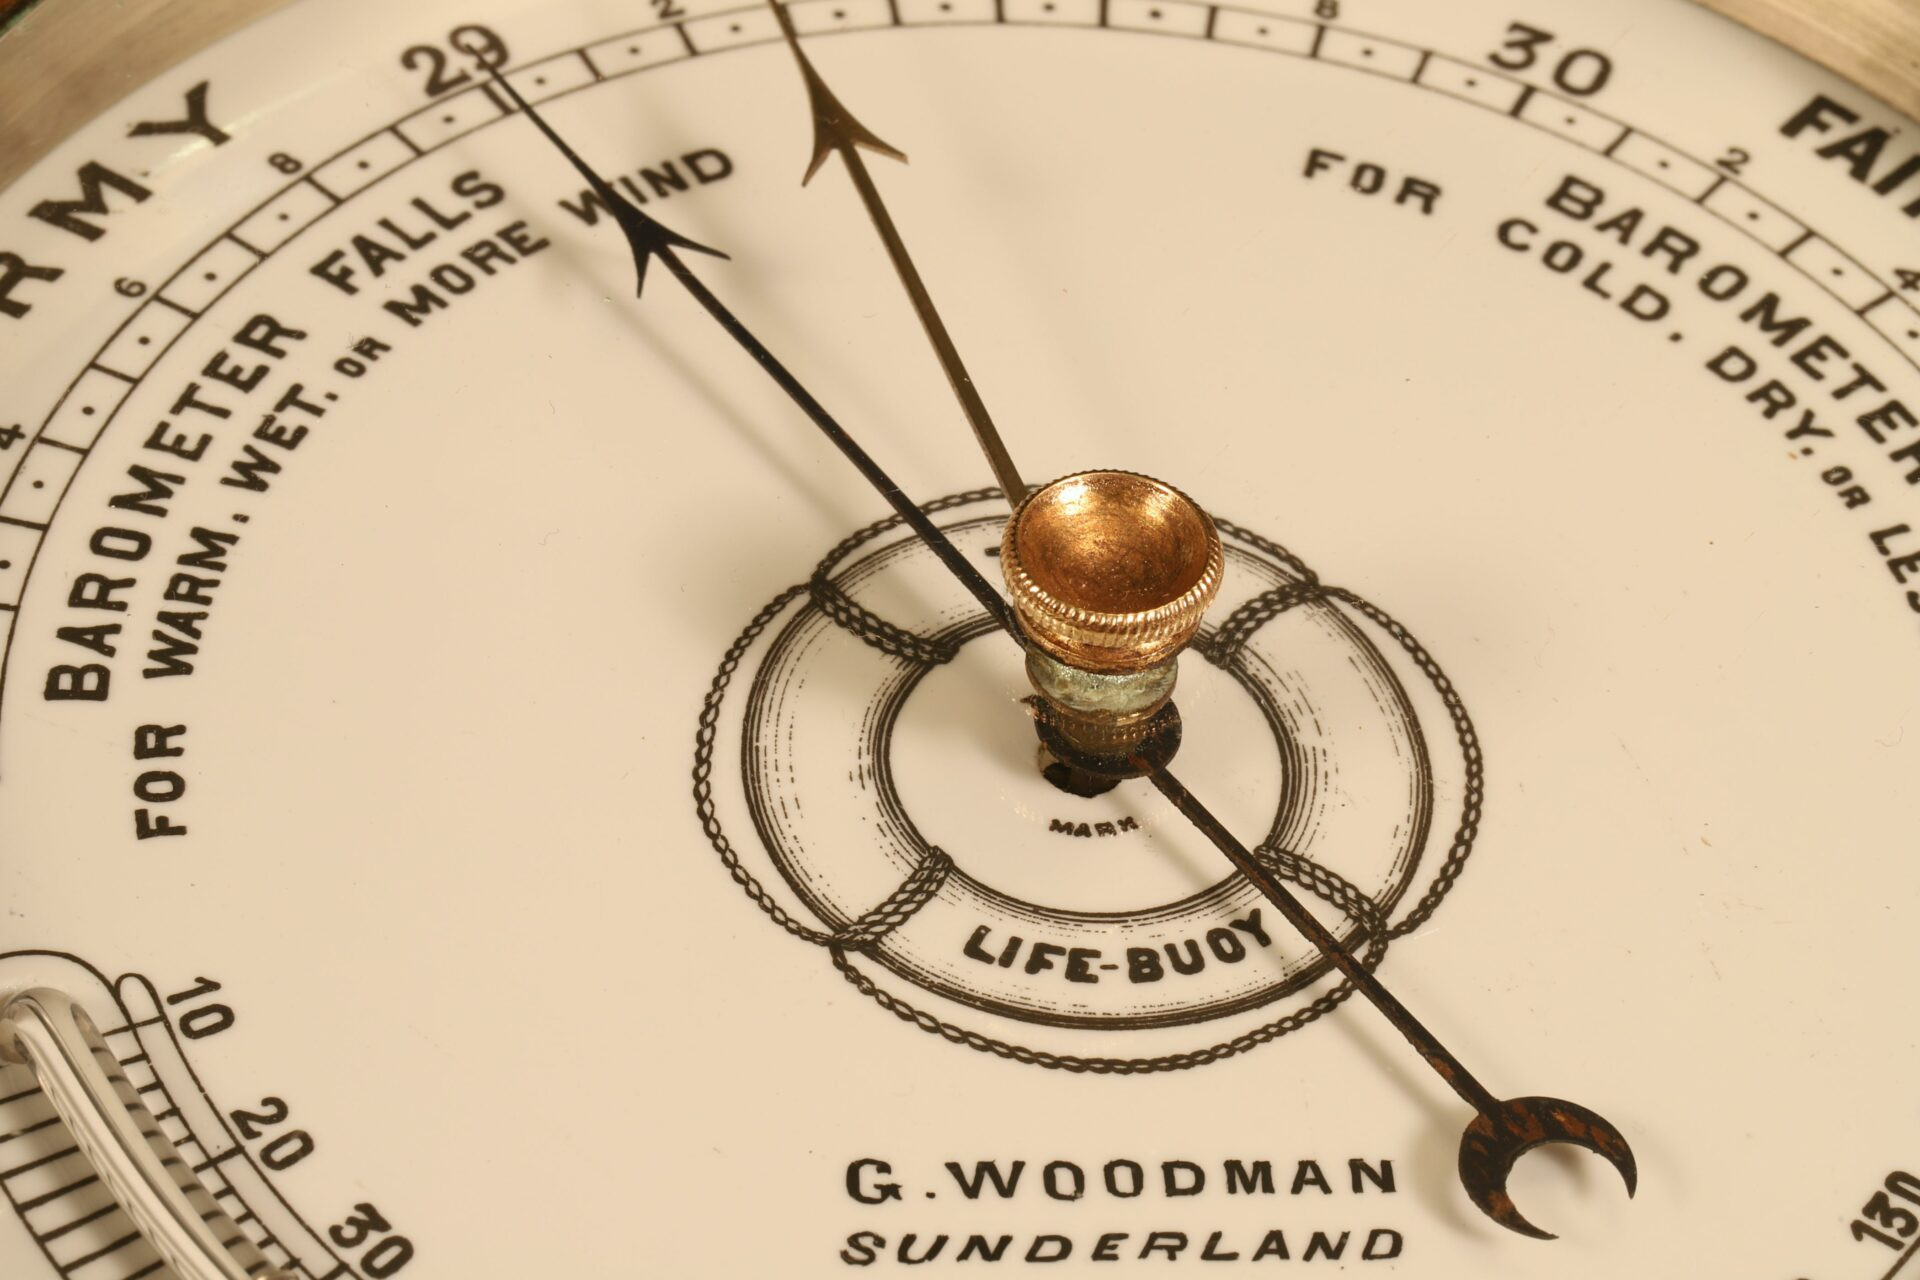 Close up of dial of The Life-Buoy Barometer by Dollond c1885